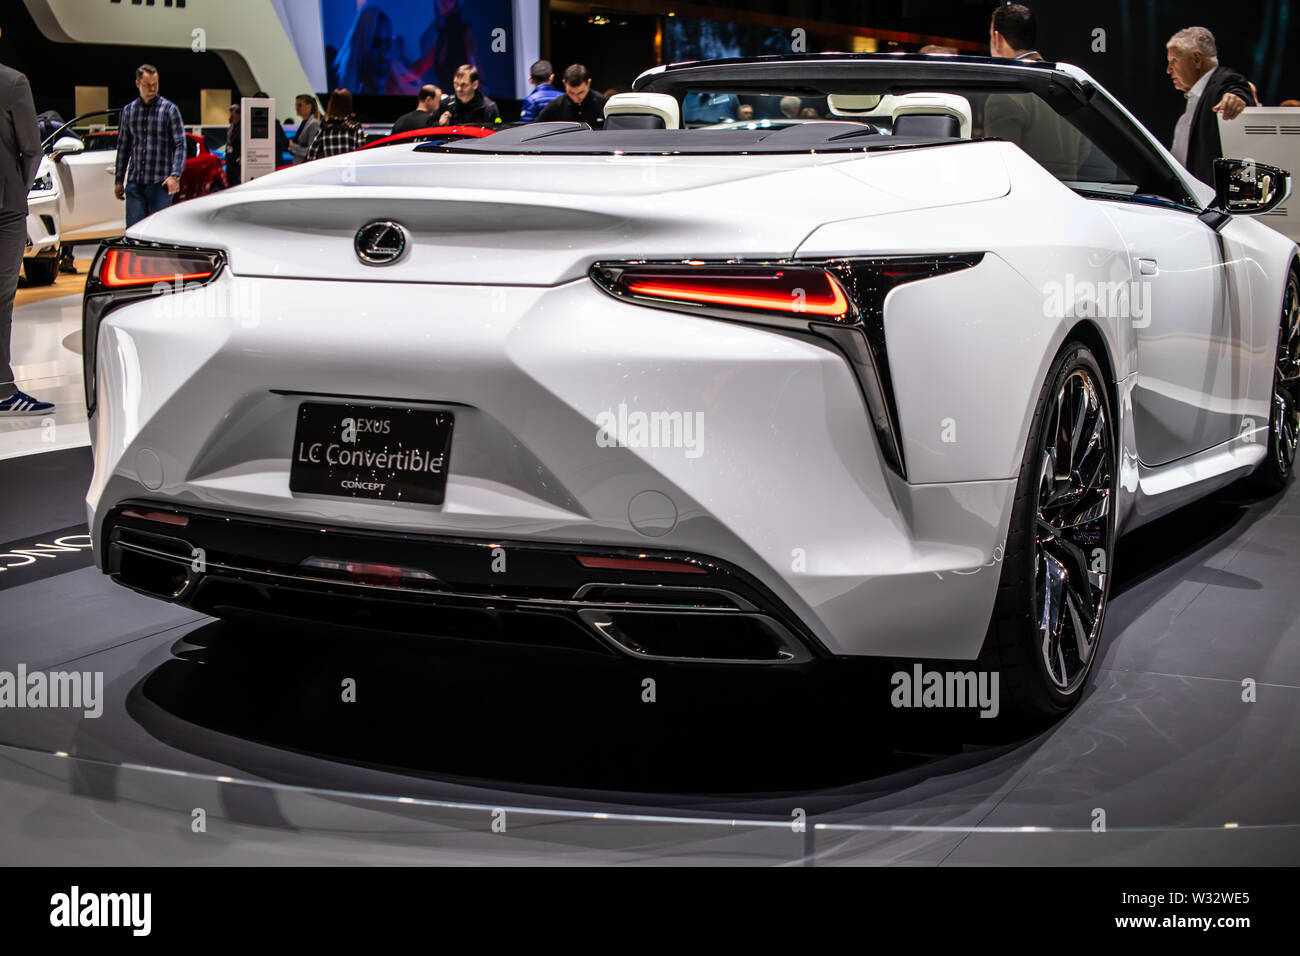 Geneva, Switzerland, March 2019 Lexus LC Convertible Concept Prototype Car, Geneva International Motor Show, produced by Japanese car maker Lexus - Stock Image